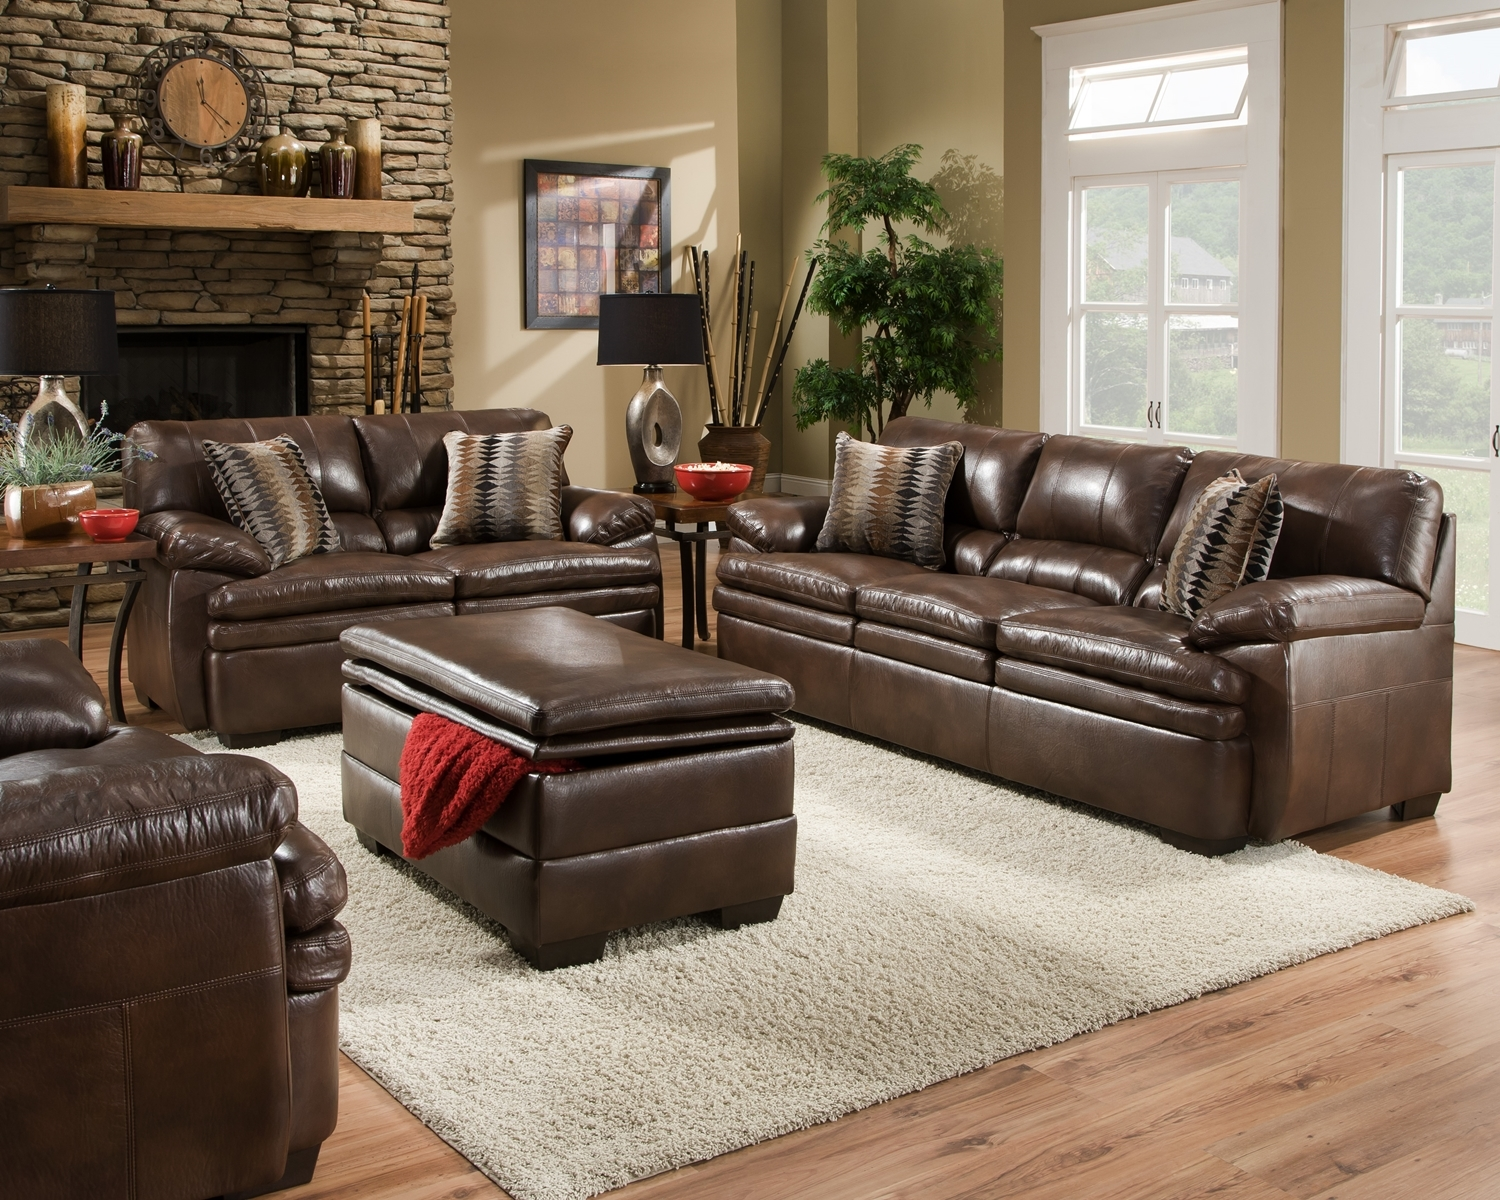 leather sofa set casual living room furniture w accent pillows ebay